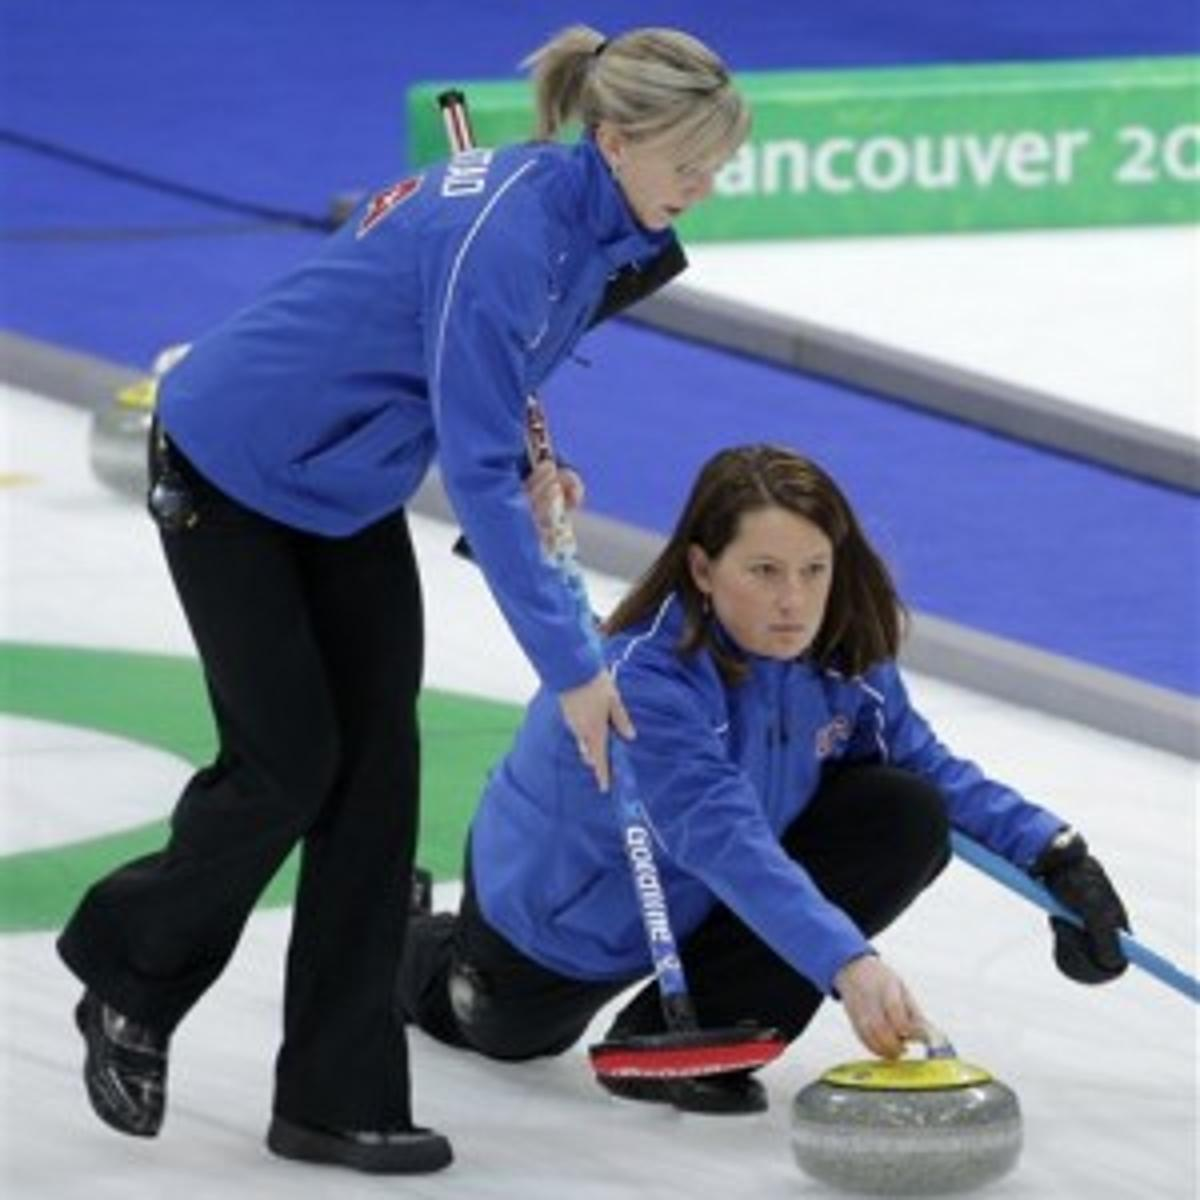 Anette Norberg medal hopes all but gone for mccormick, u.s. | olympics